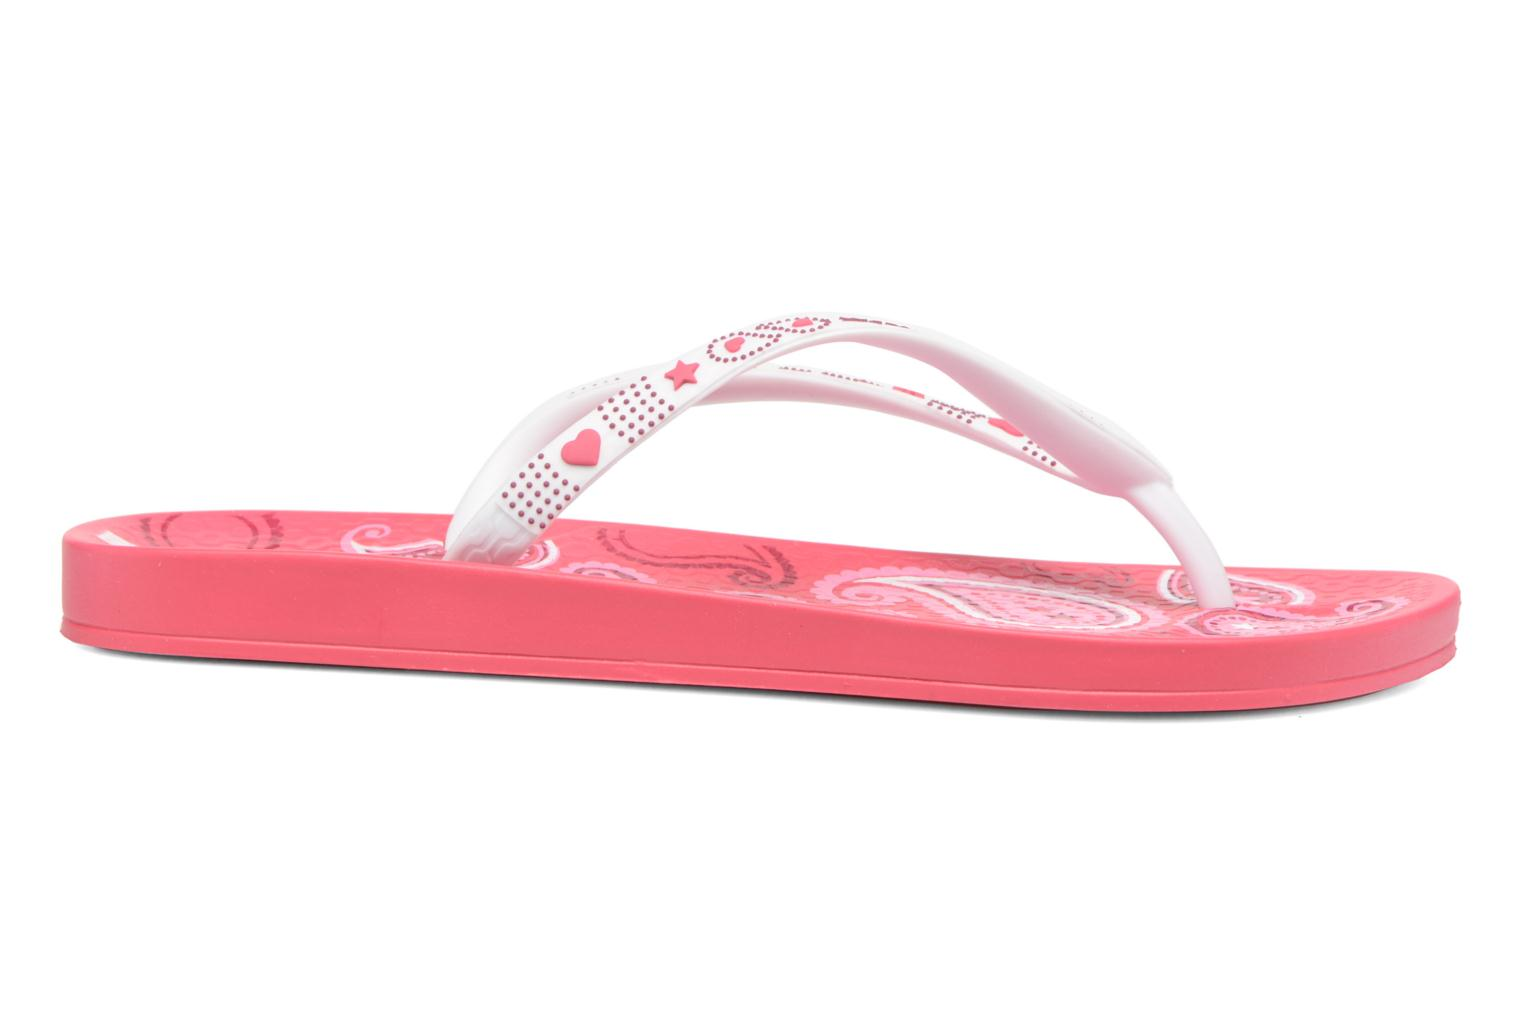 Anatomic Lovely VII Pink/White